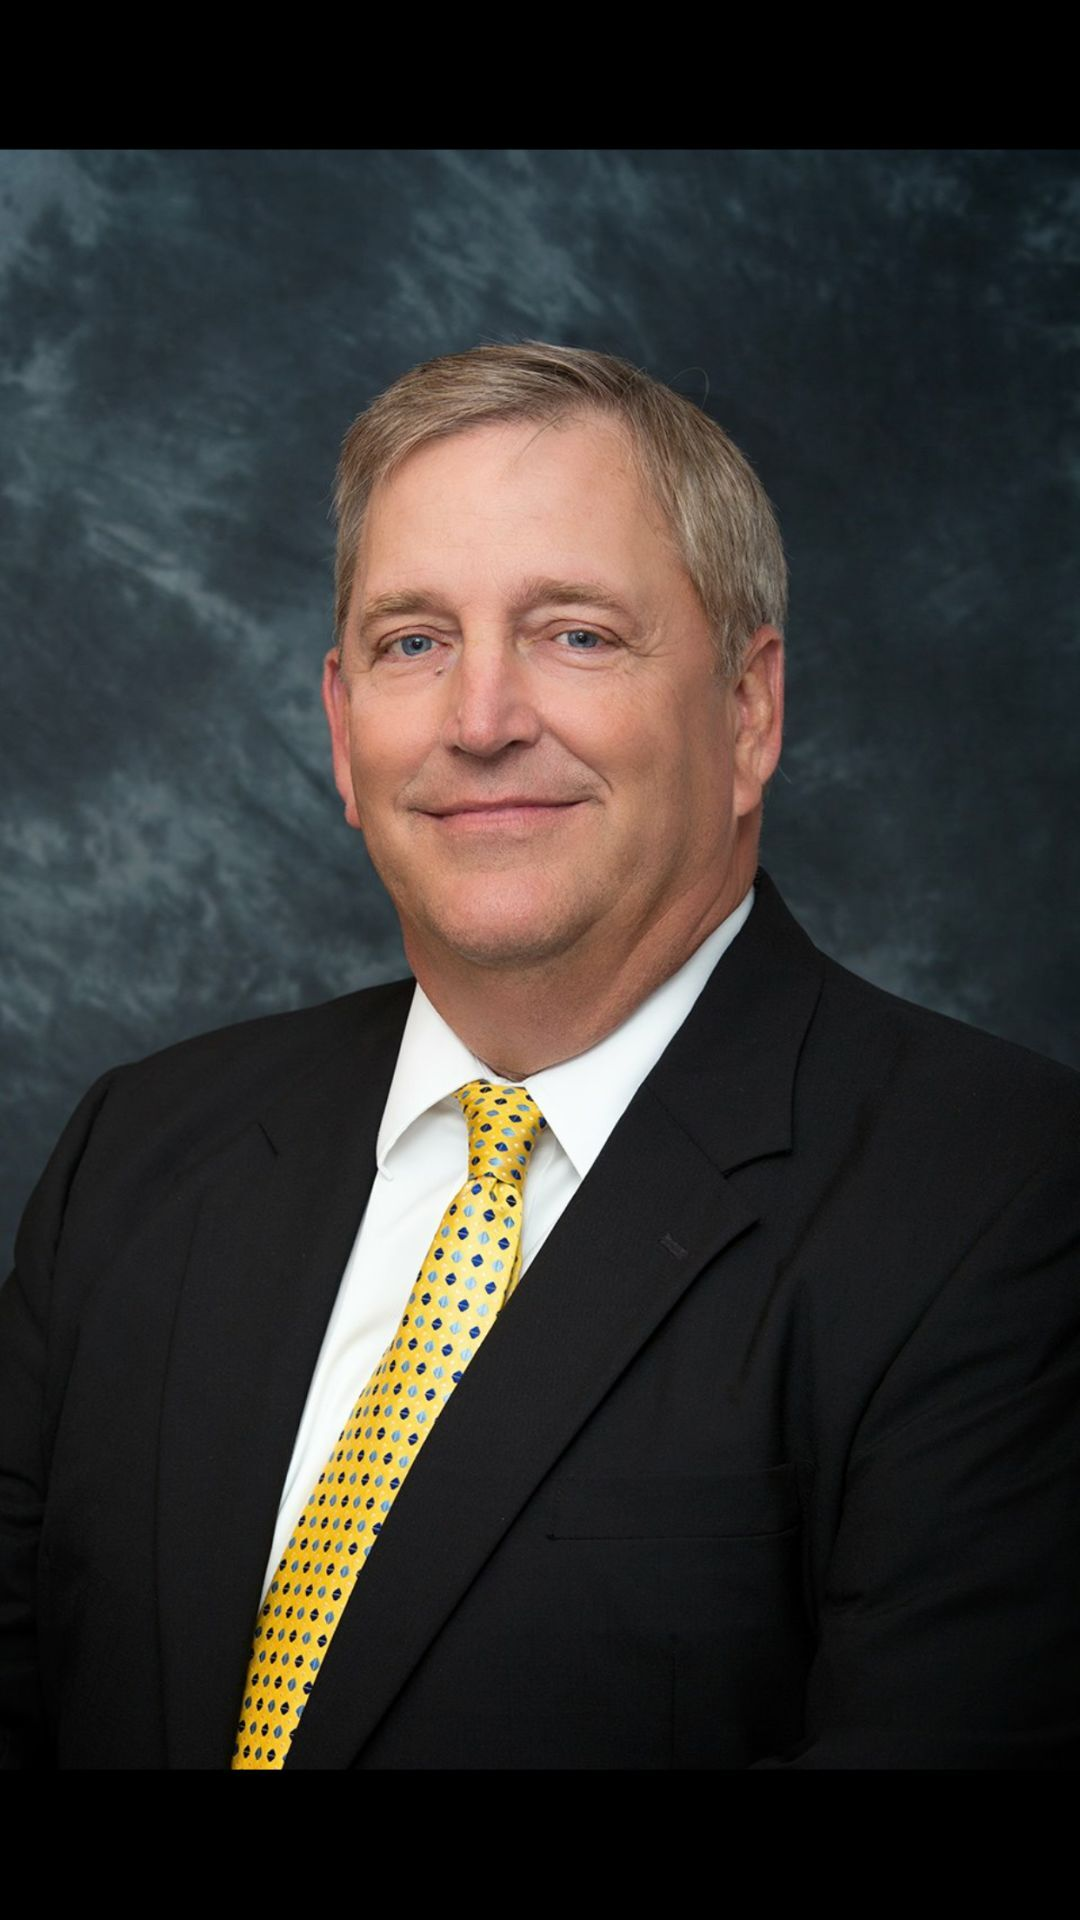 Powhatan County Administrator Ned Smither